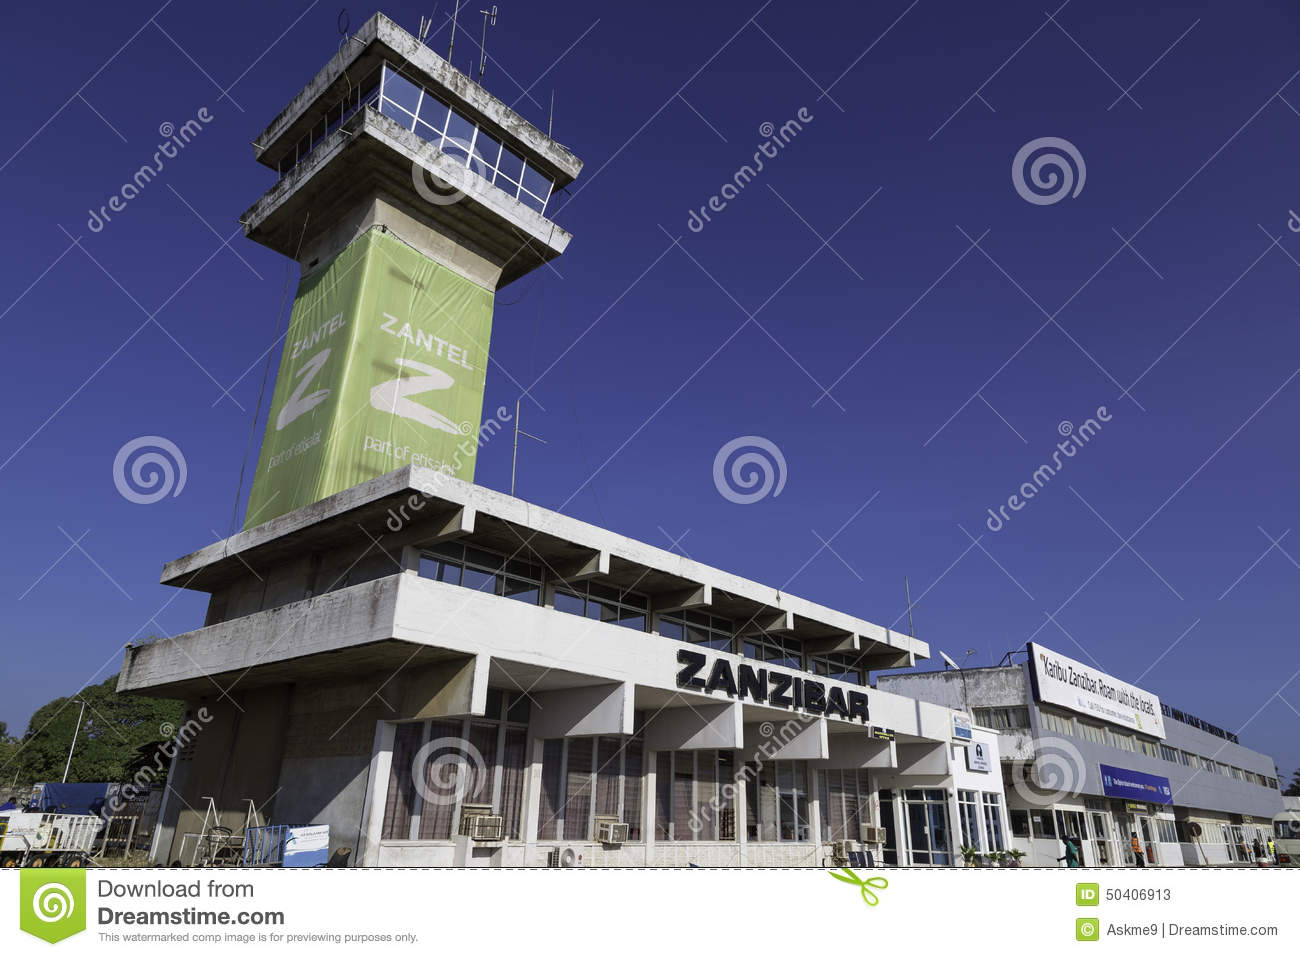 Aeroporto Zanzibar : Zanzibar airport editorial stock photo image